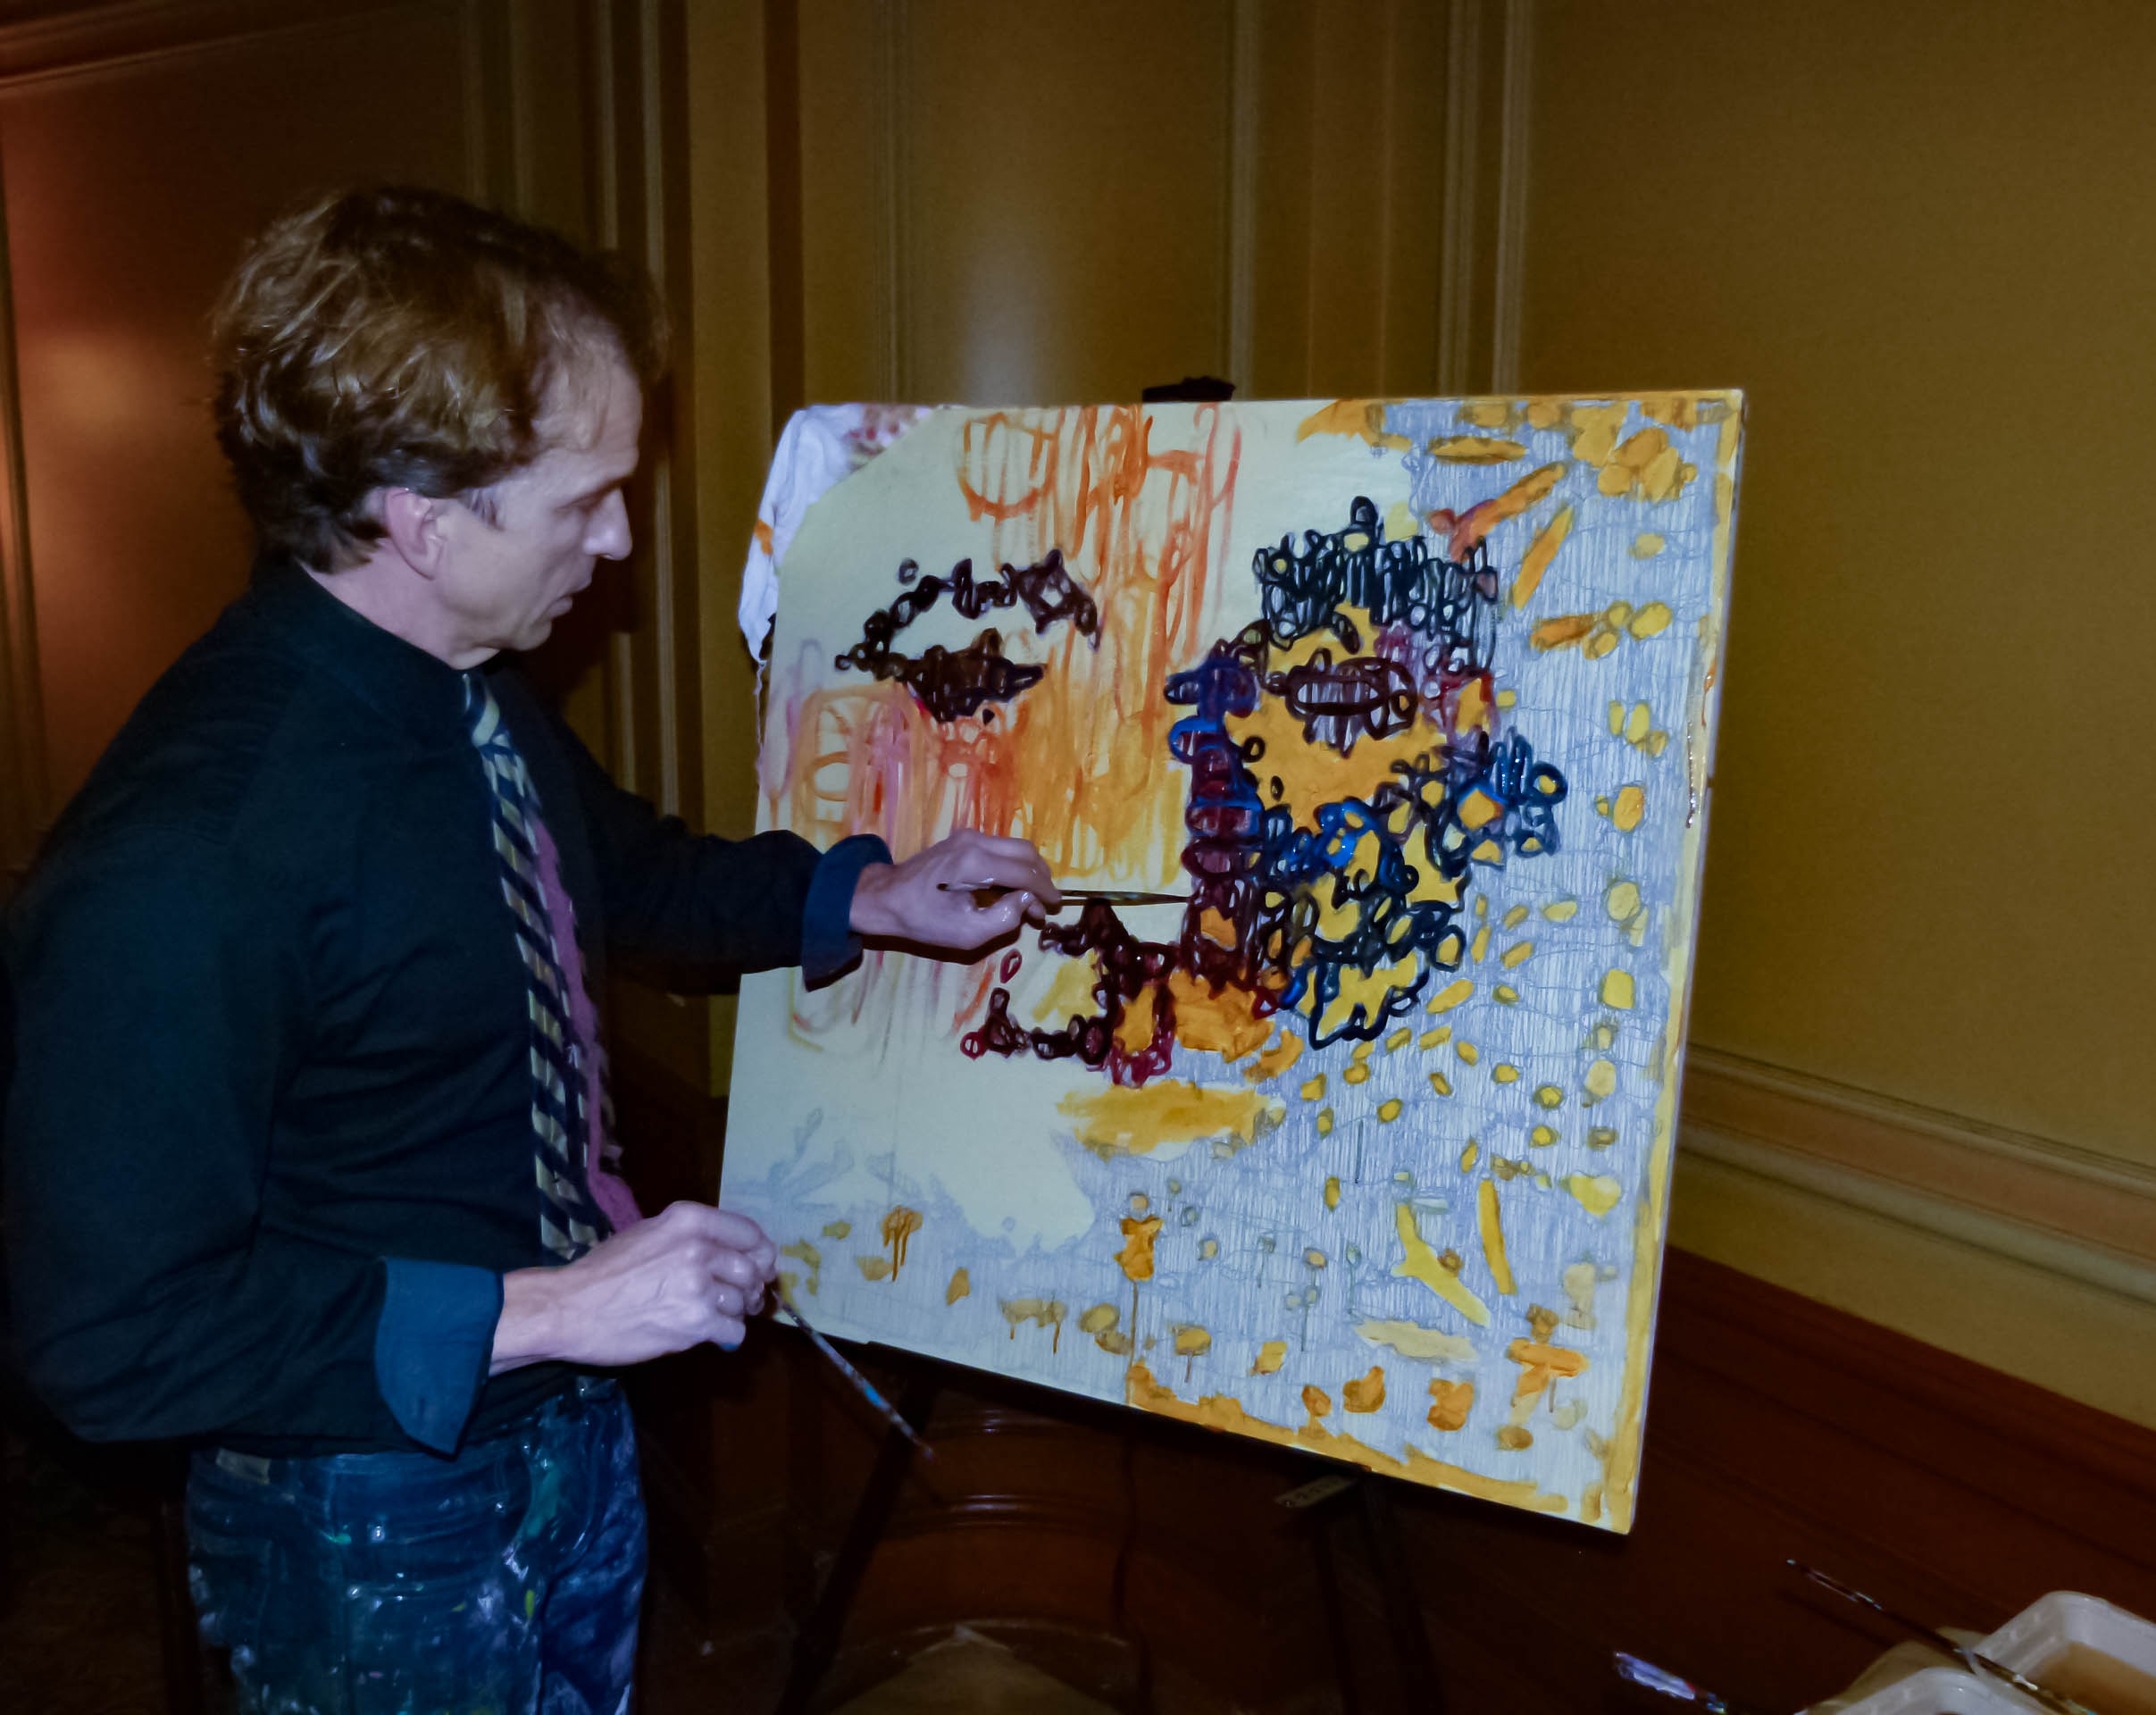 Pittsburgh artist Tom Mosser created a painting using regular paint and different kinds of Hershey's Syrup.